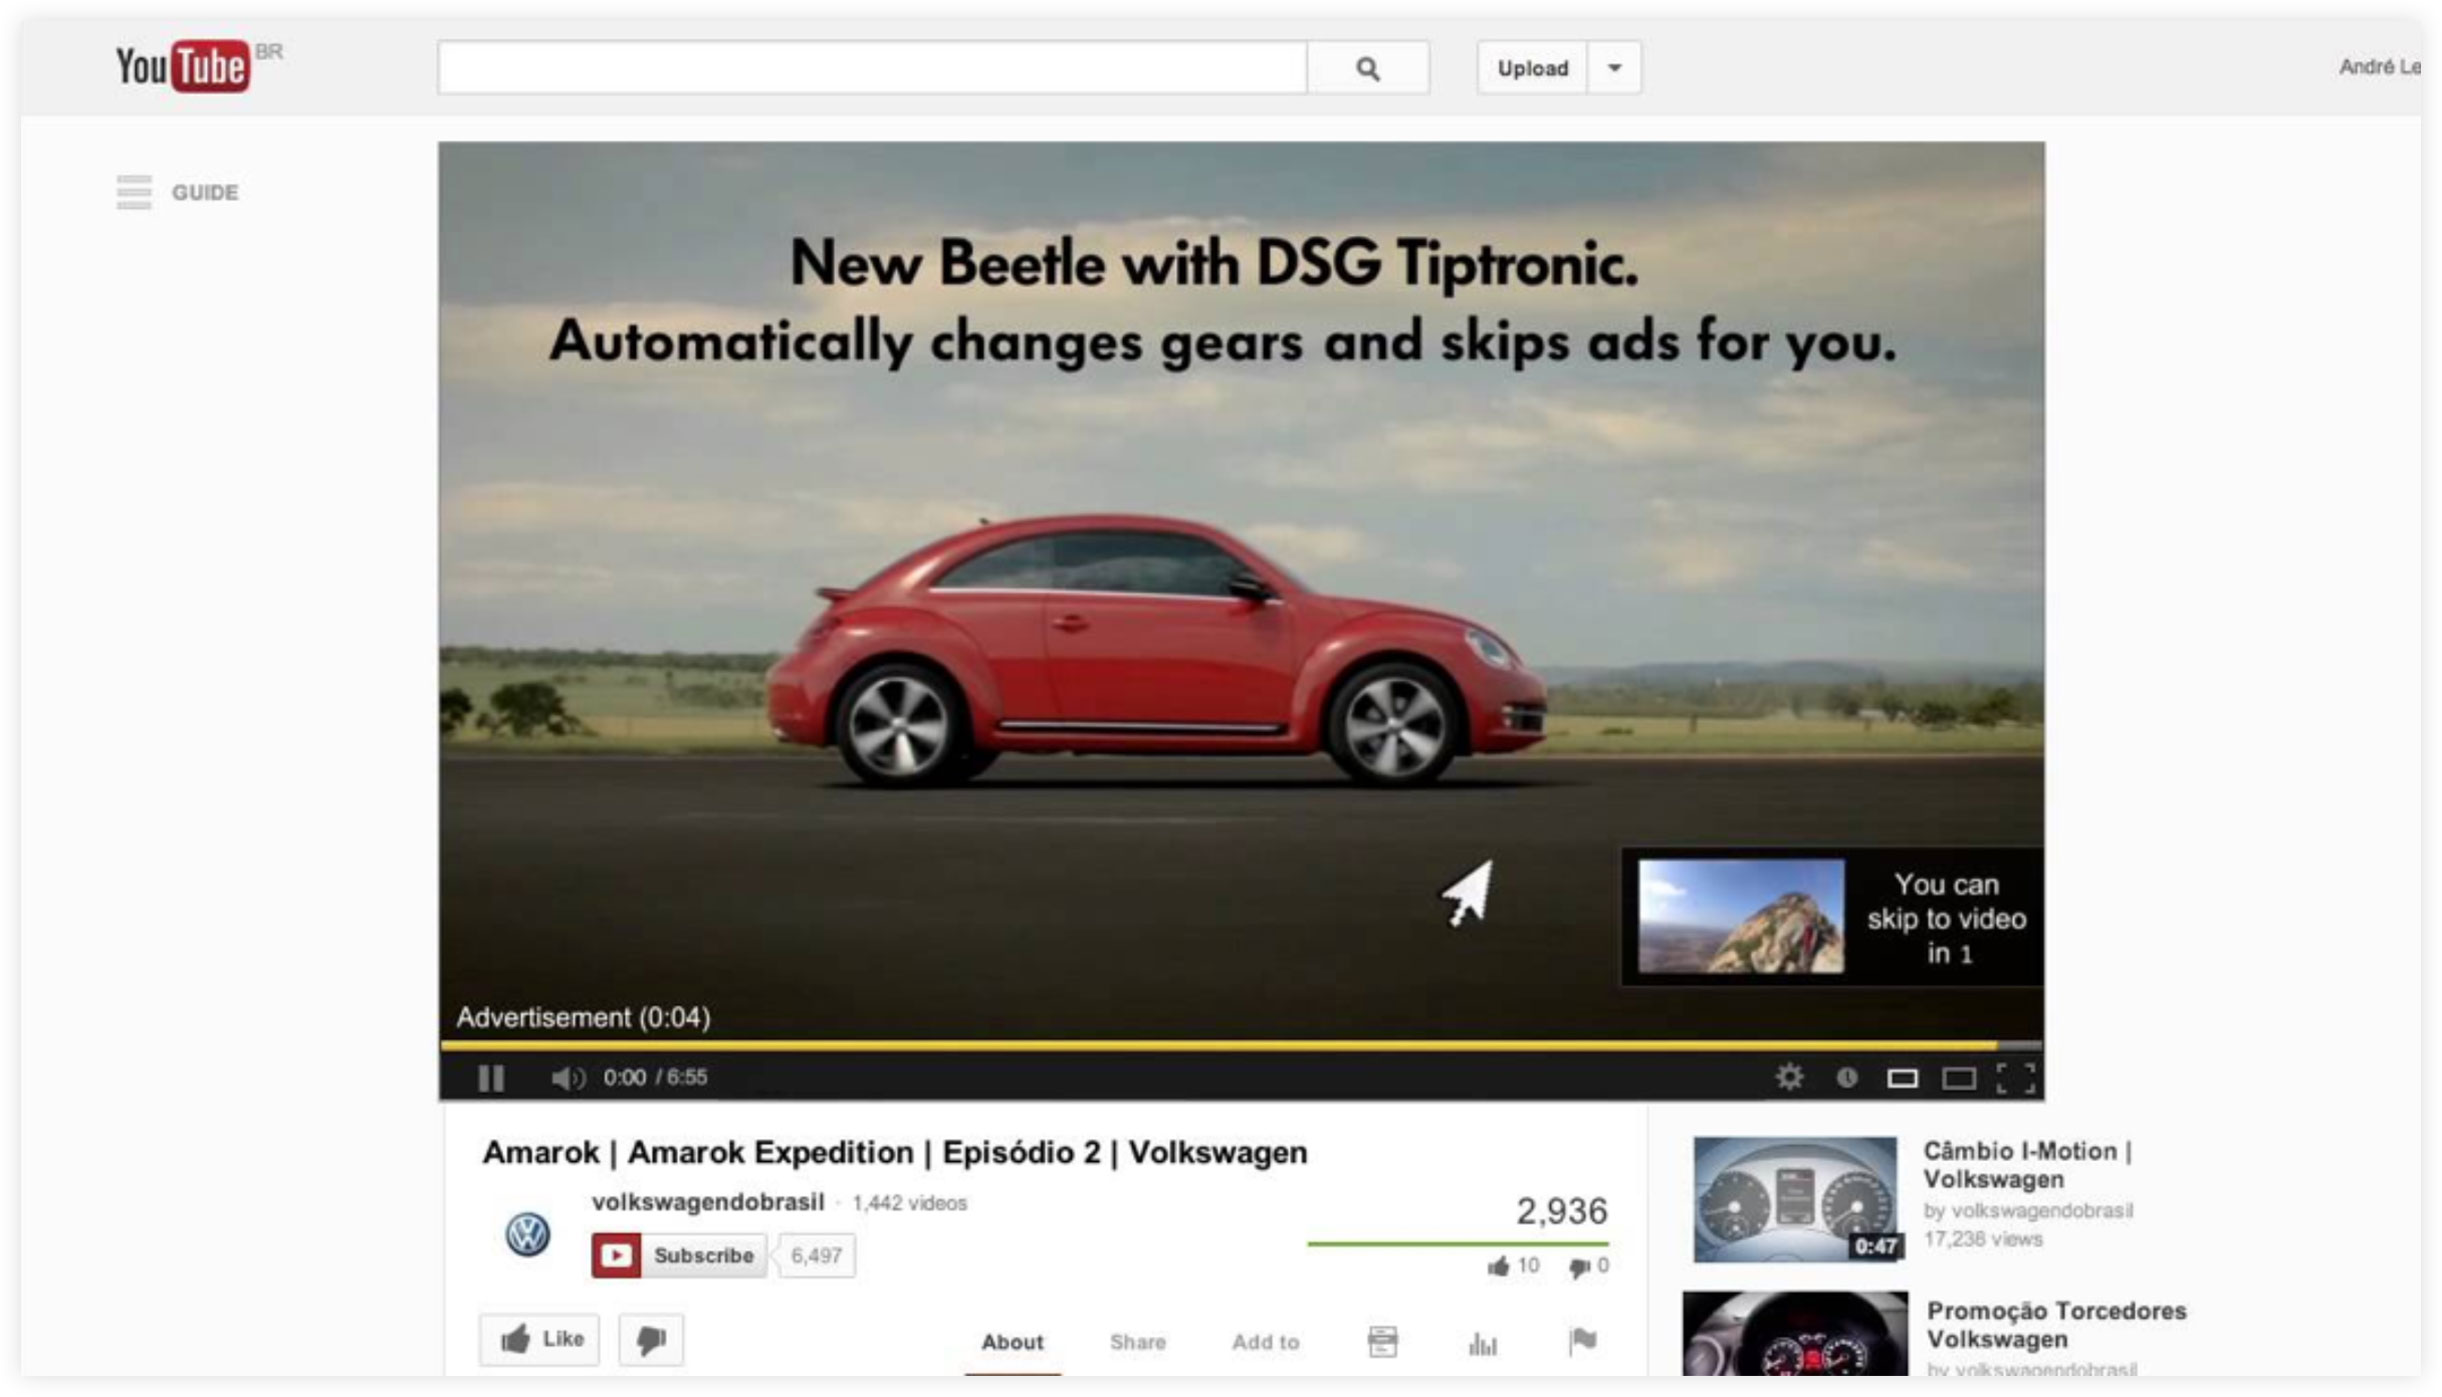 Example of effective YouTube Video Advertising